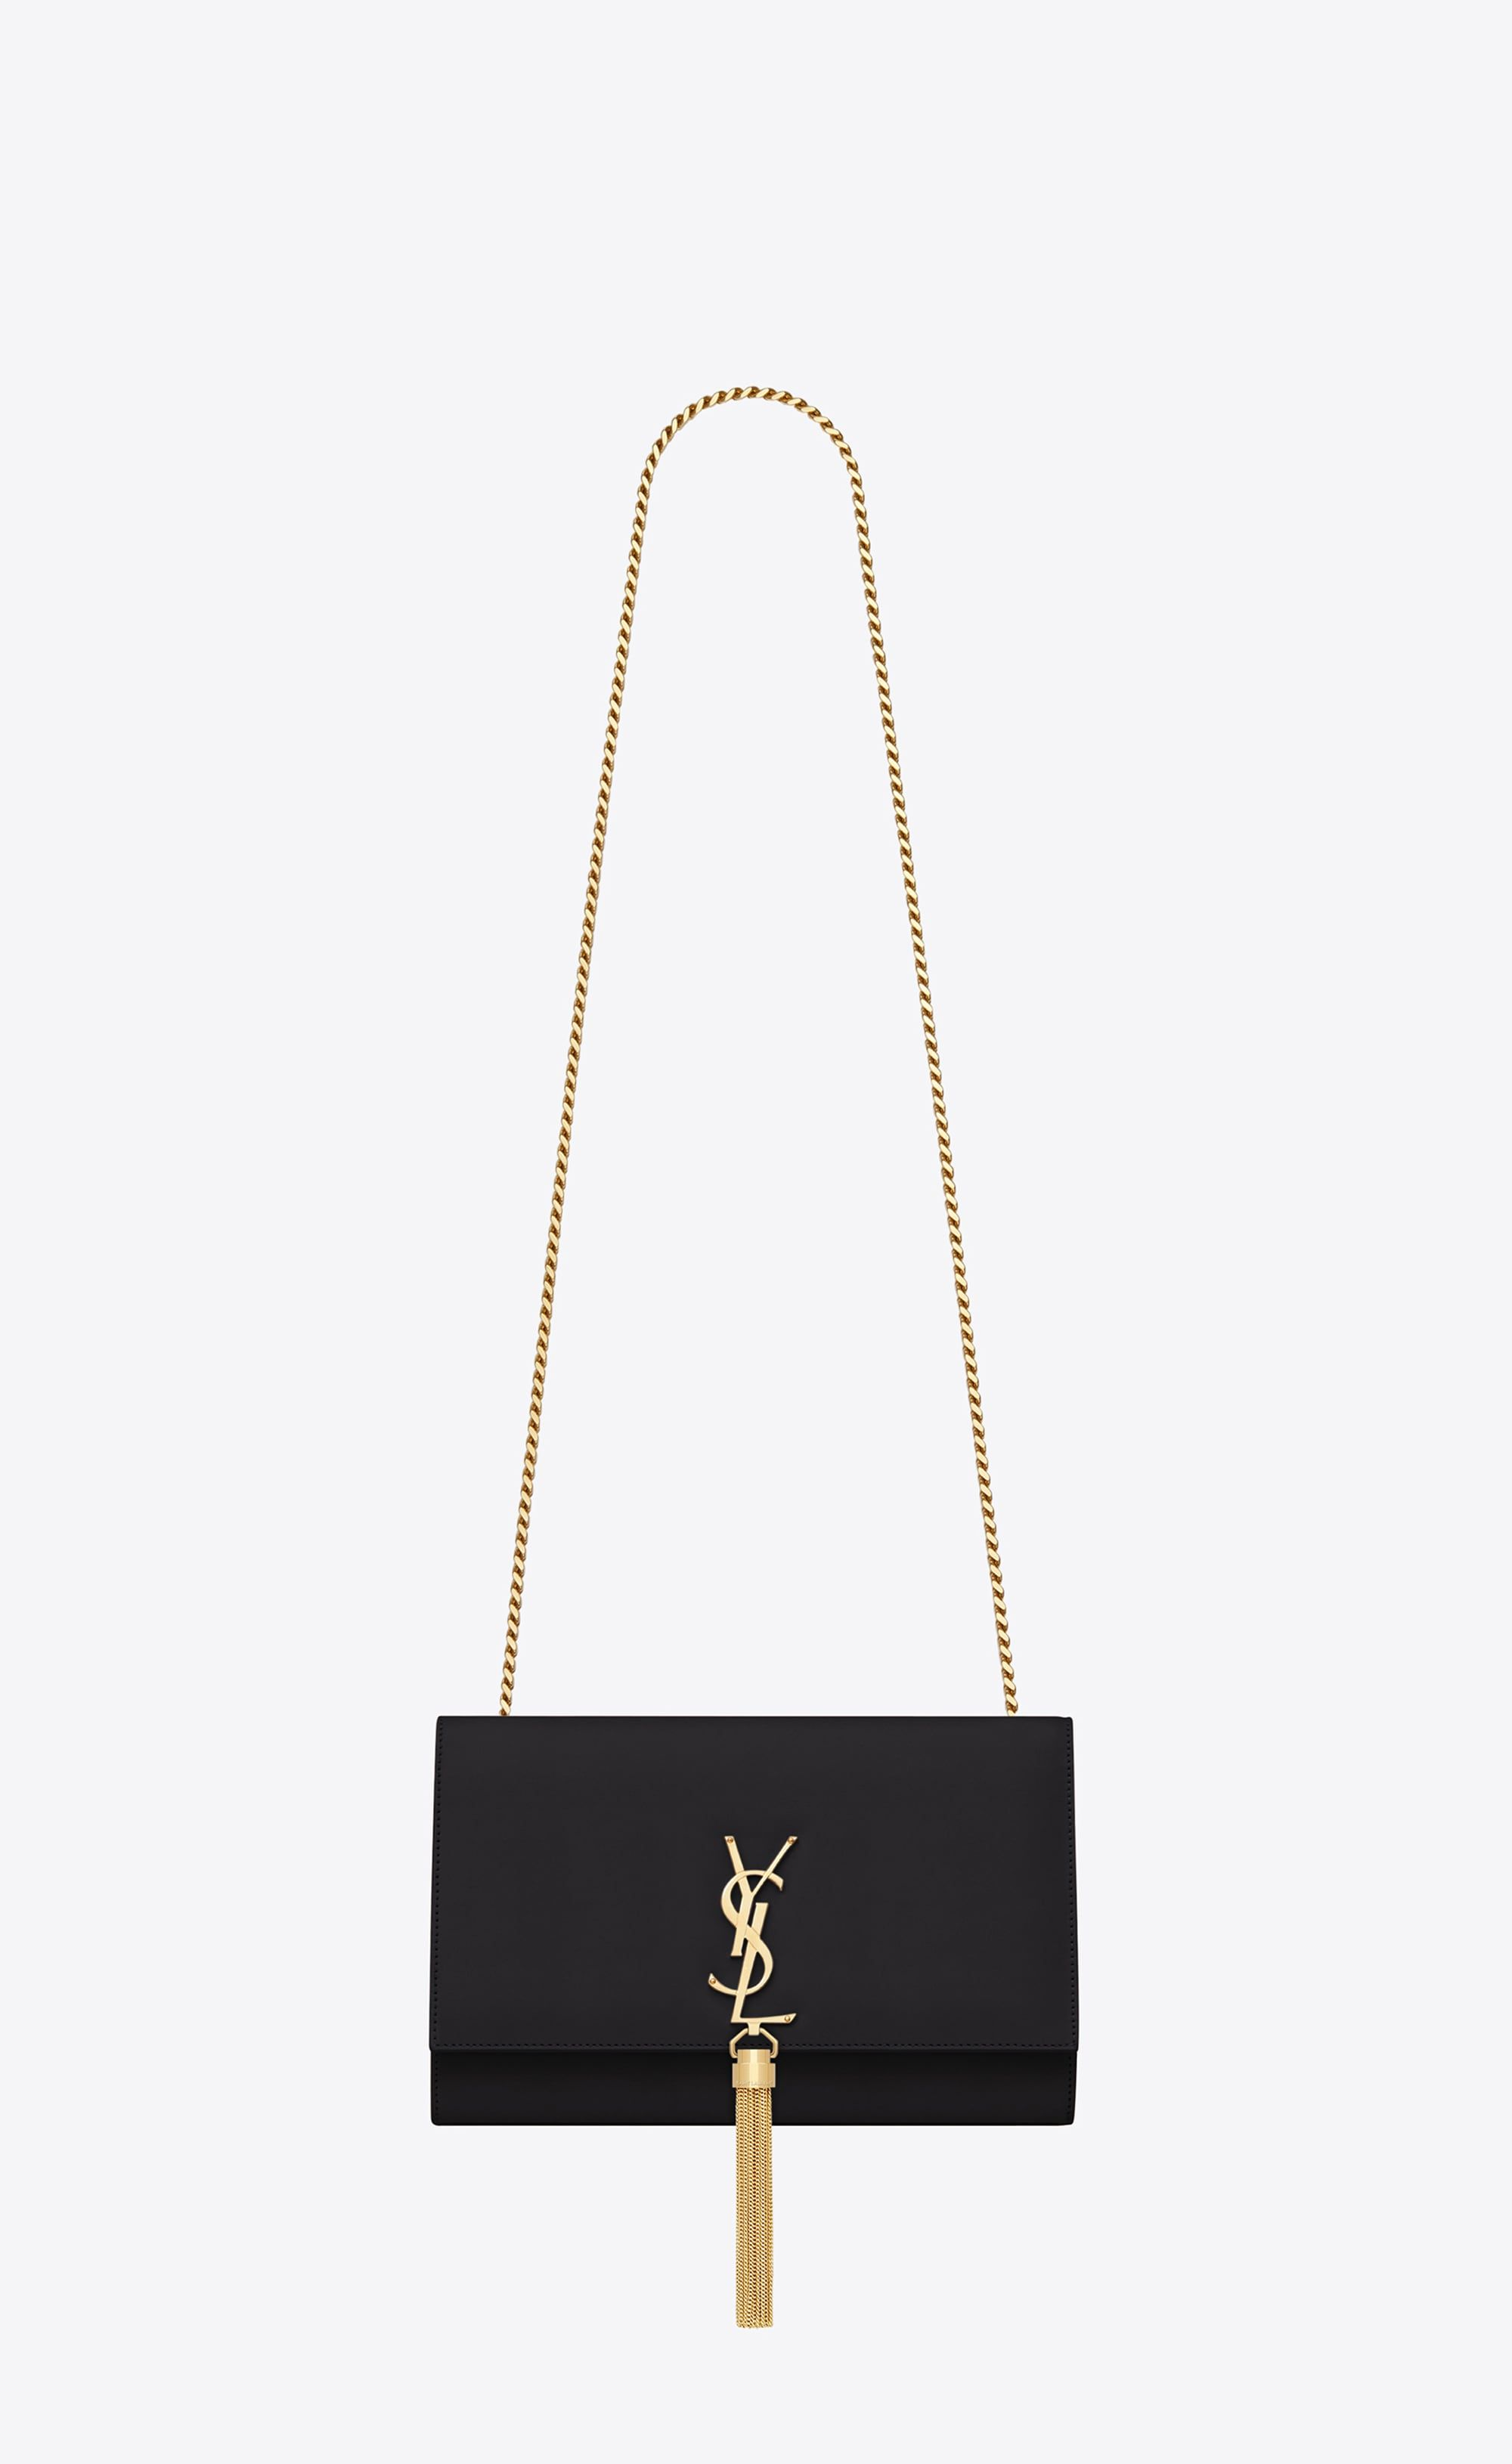 8edd8d3490e SAINT LAURENT MONOGRAM KATE WITH TASSEL Woman Medium KATE chain bag tassel  in black tulip crocodile-embossed shiny leather V4